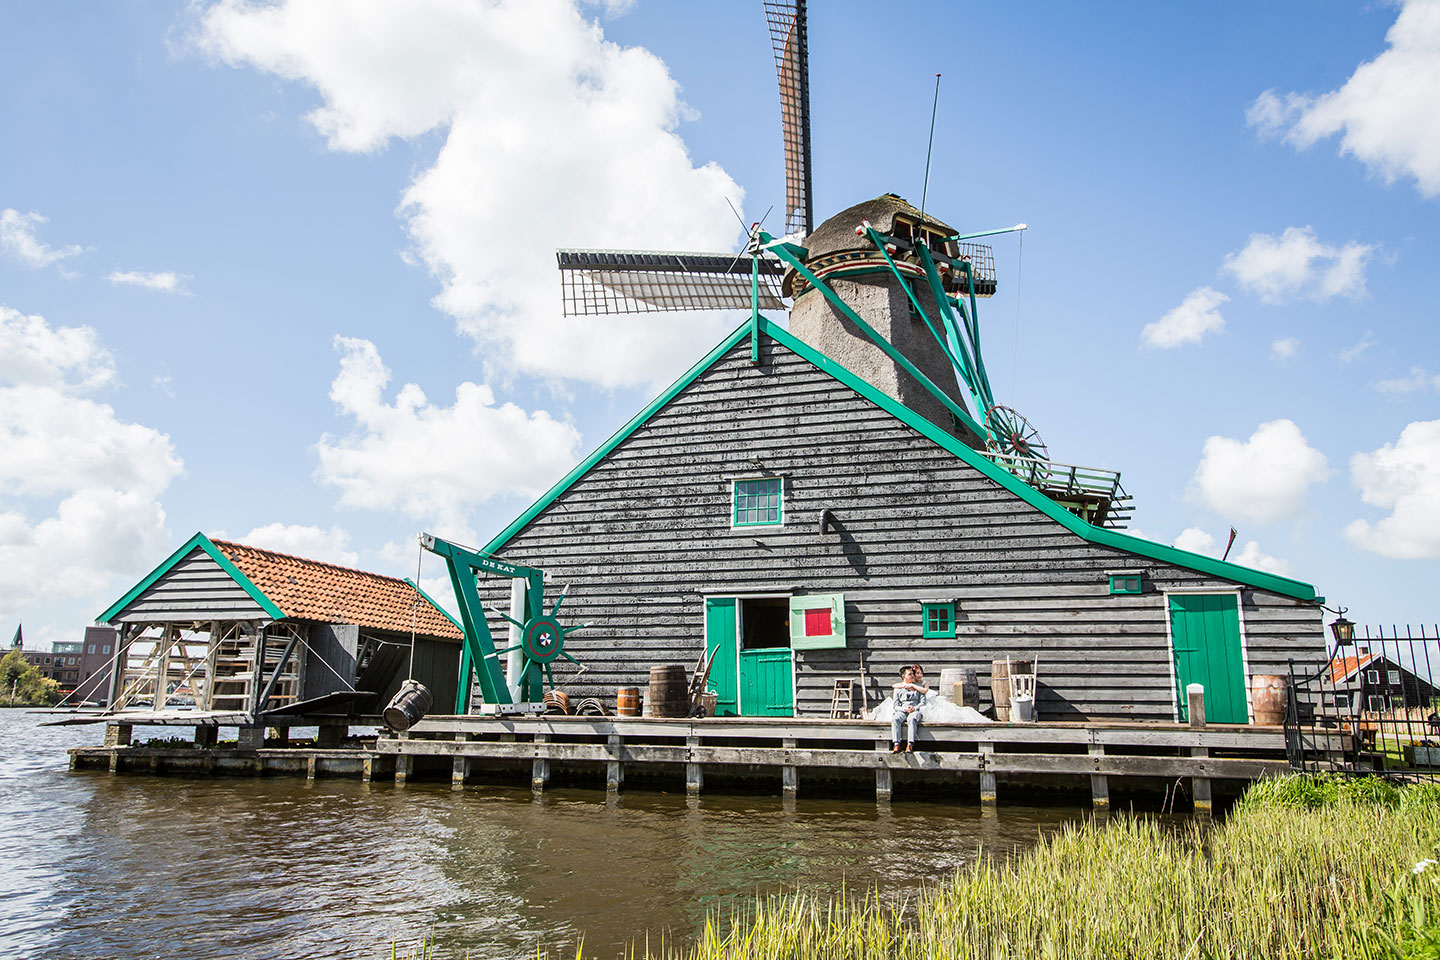 05-Zaanse-Schans-photographer